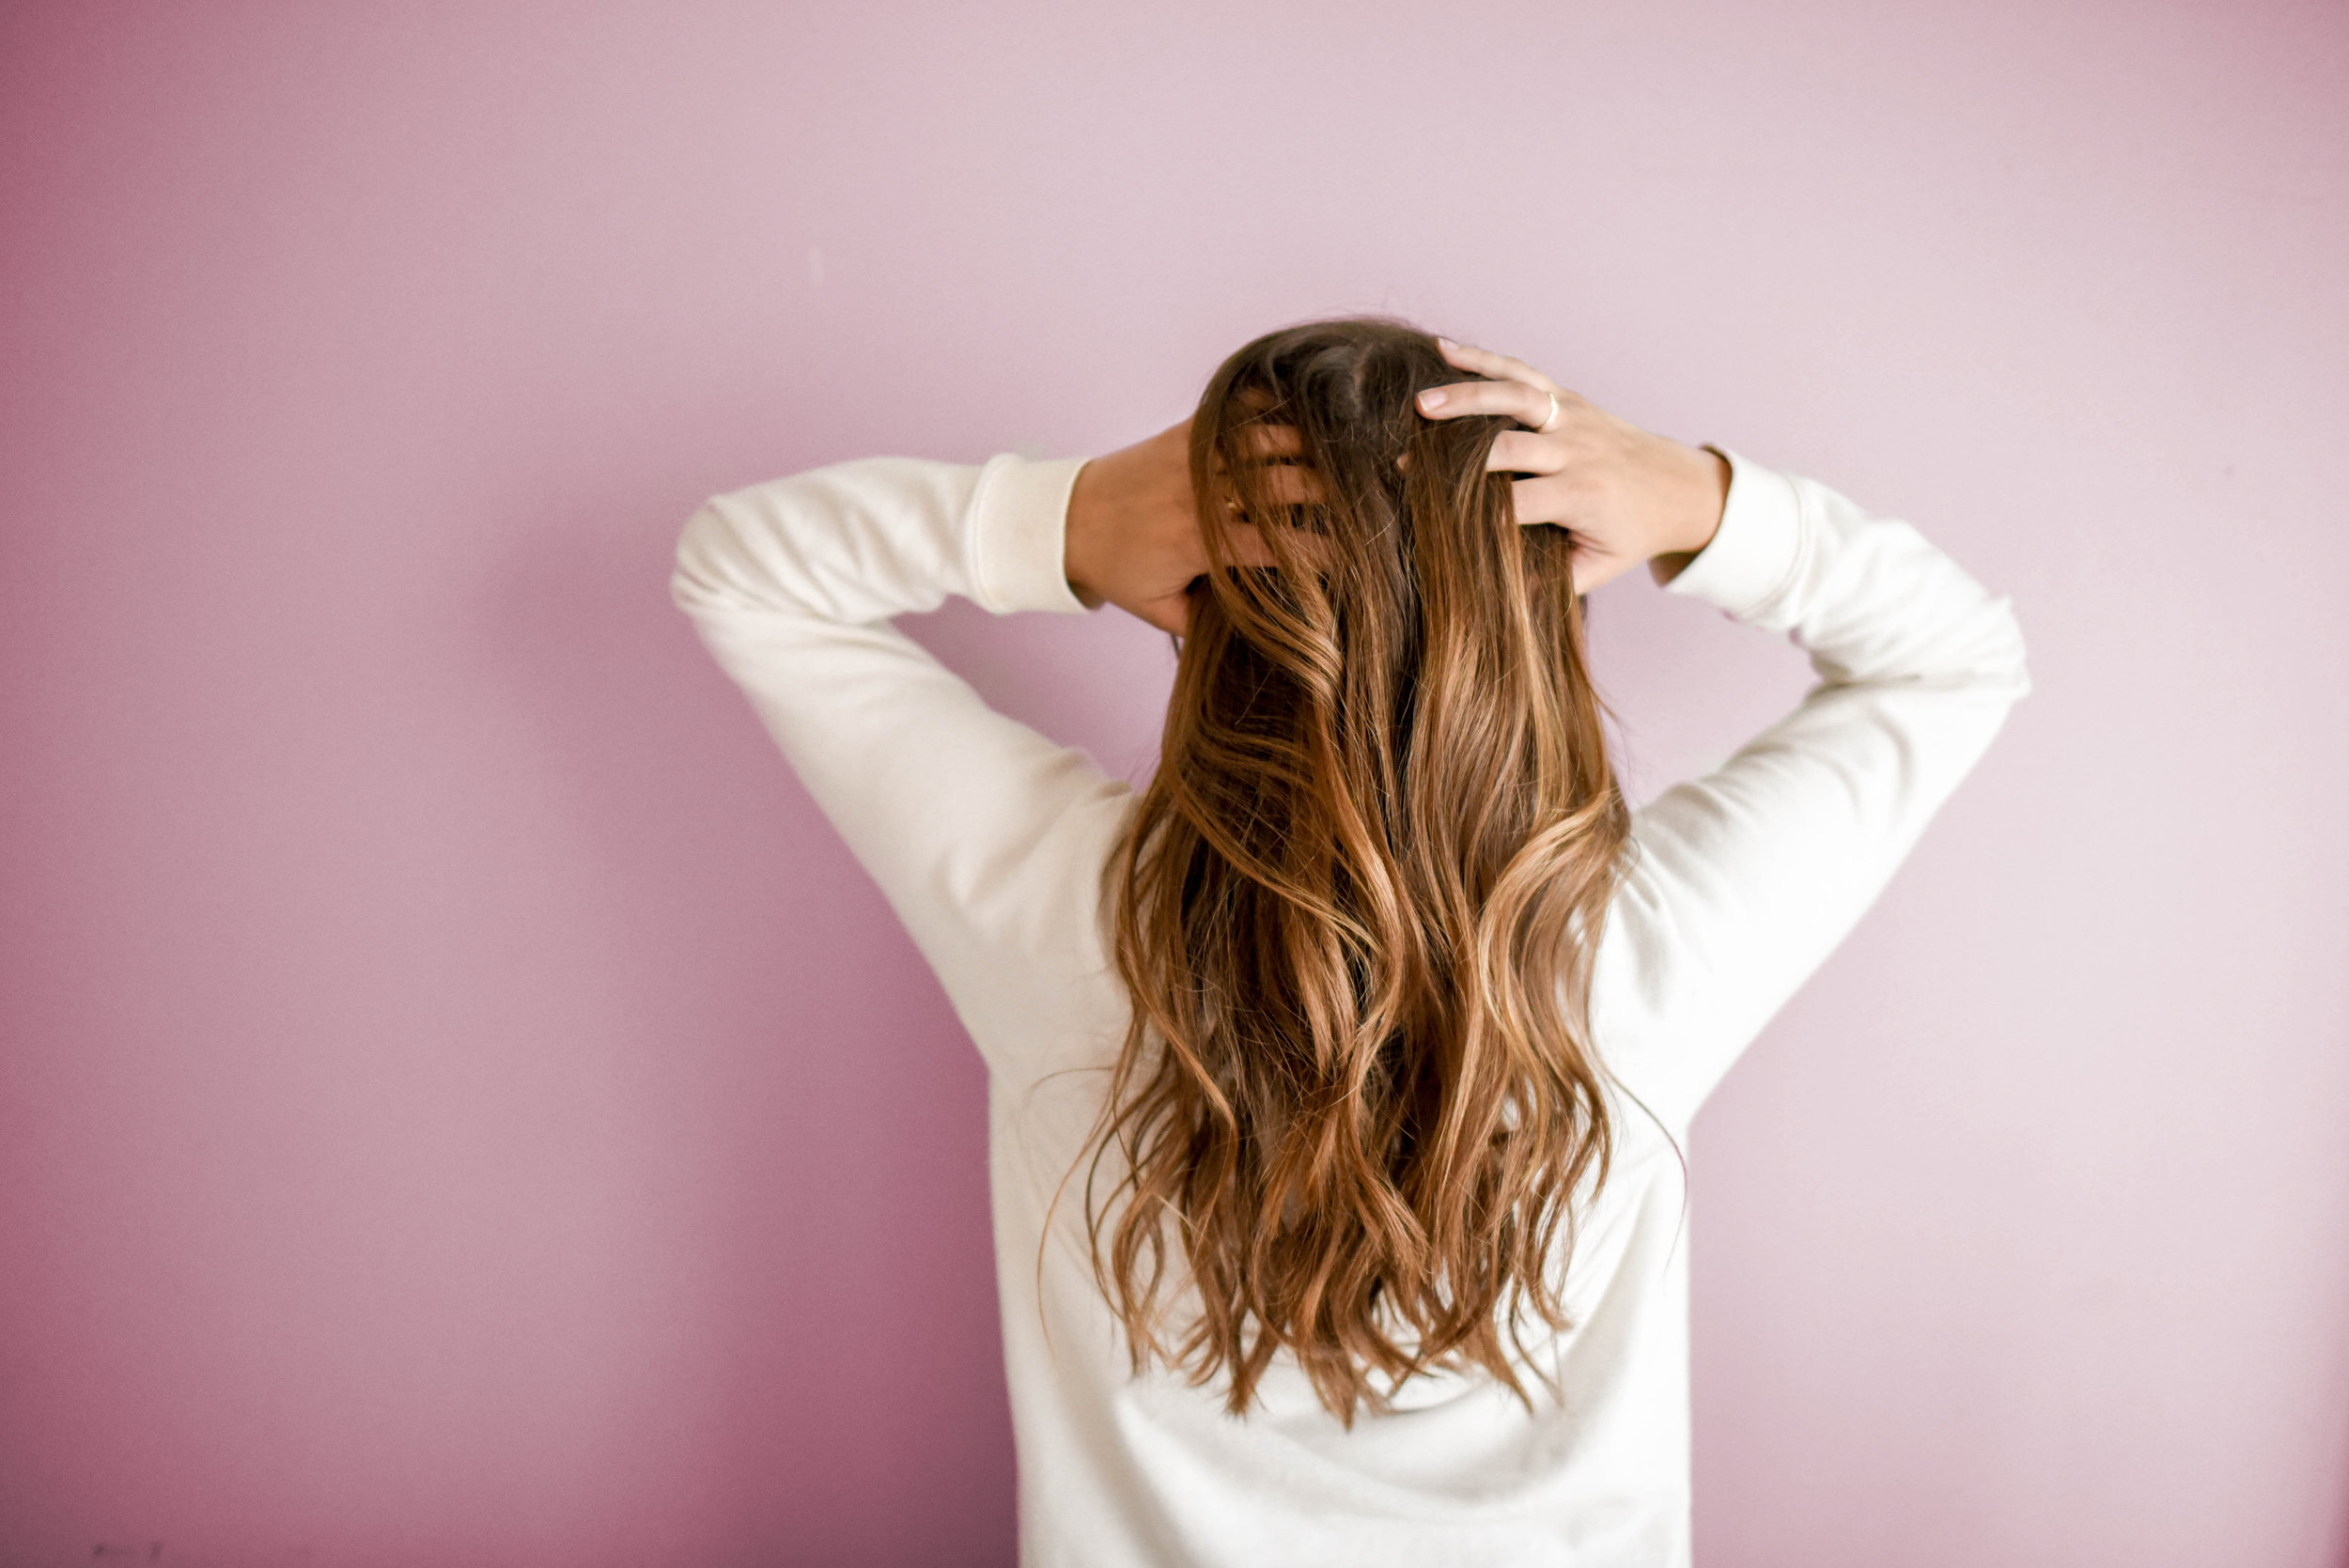 Hair - Blowout: 27-30 credits